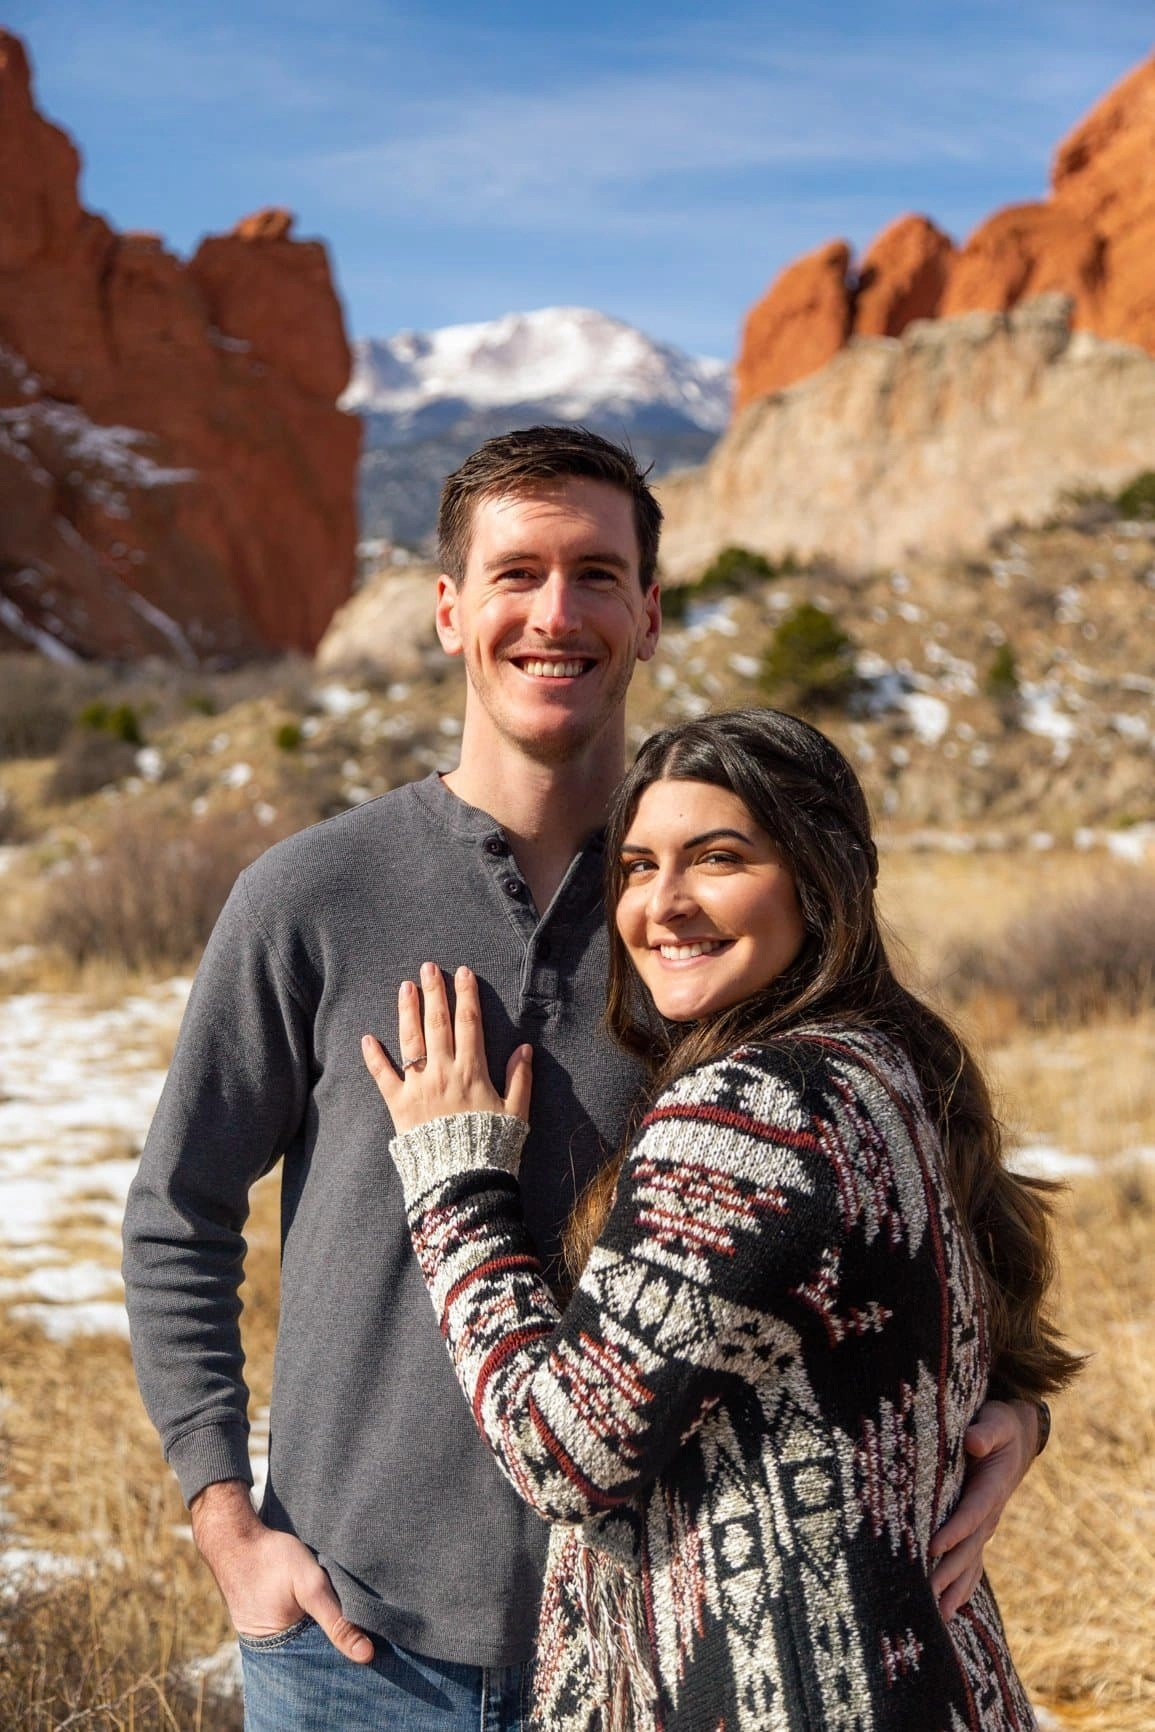 Classic engagement shot among the beautiful backdrop of sanstone towers in Garden of the Gods park in Colorado